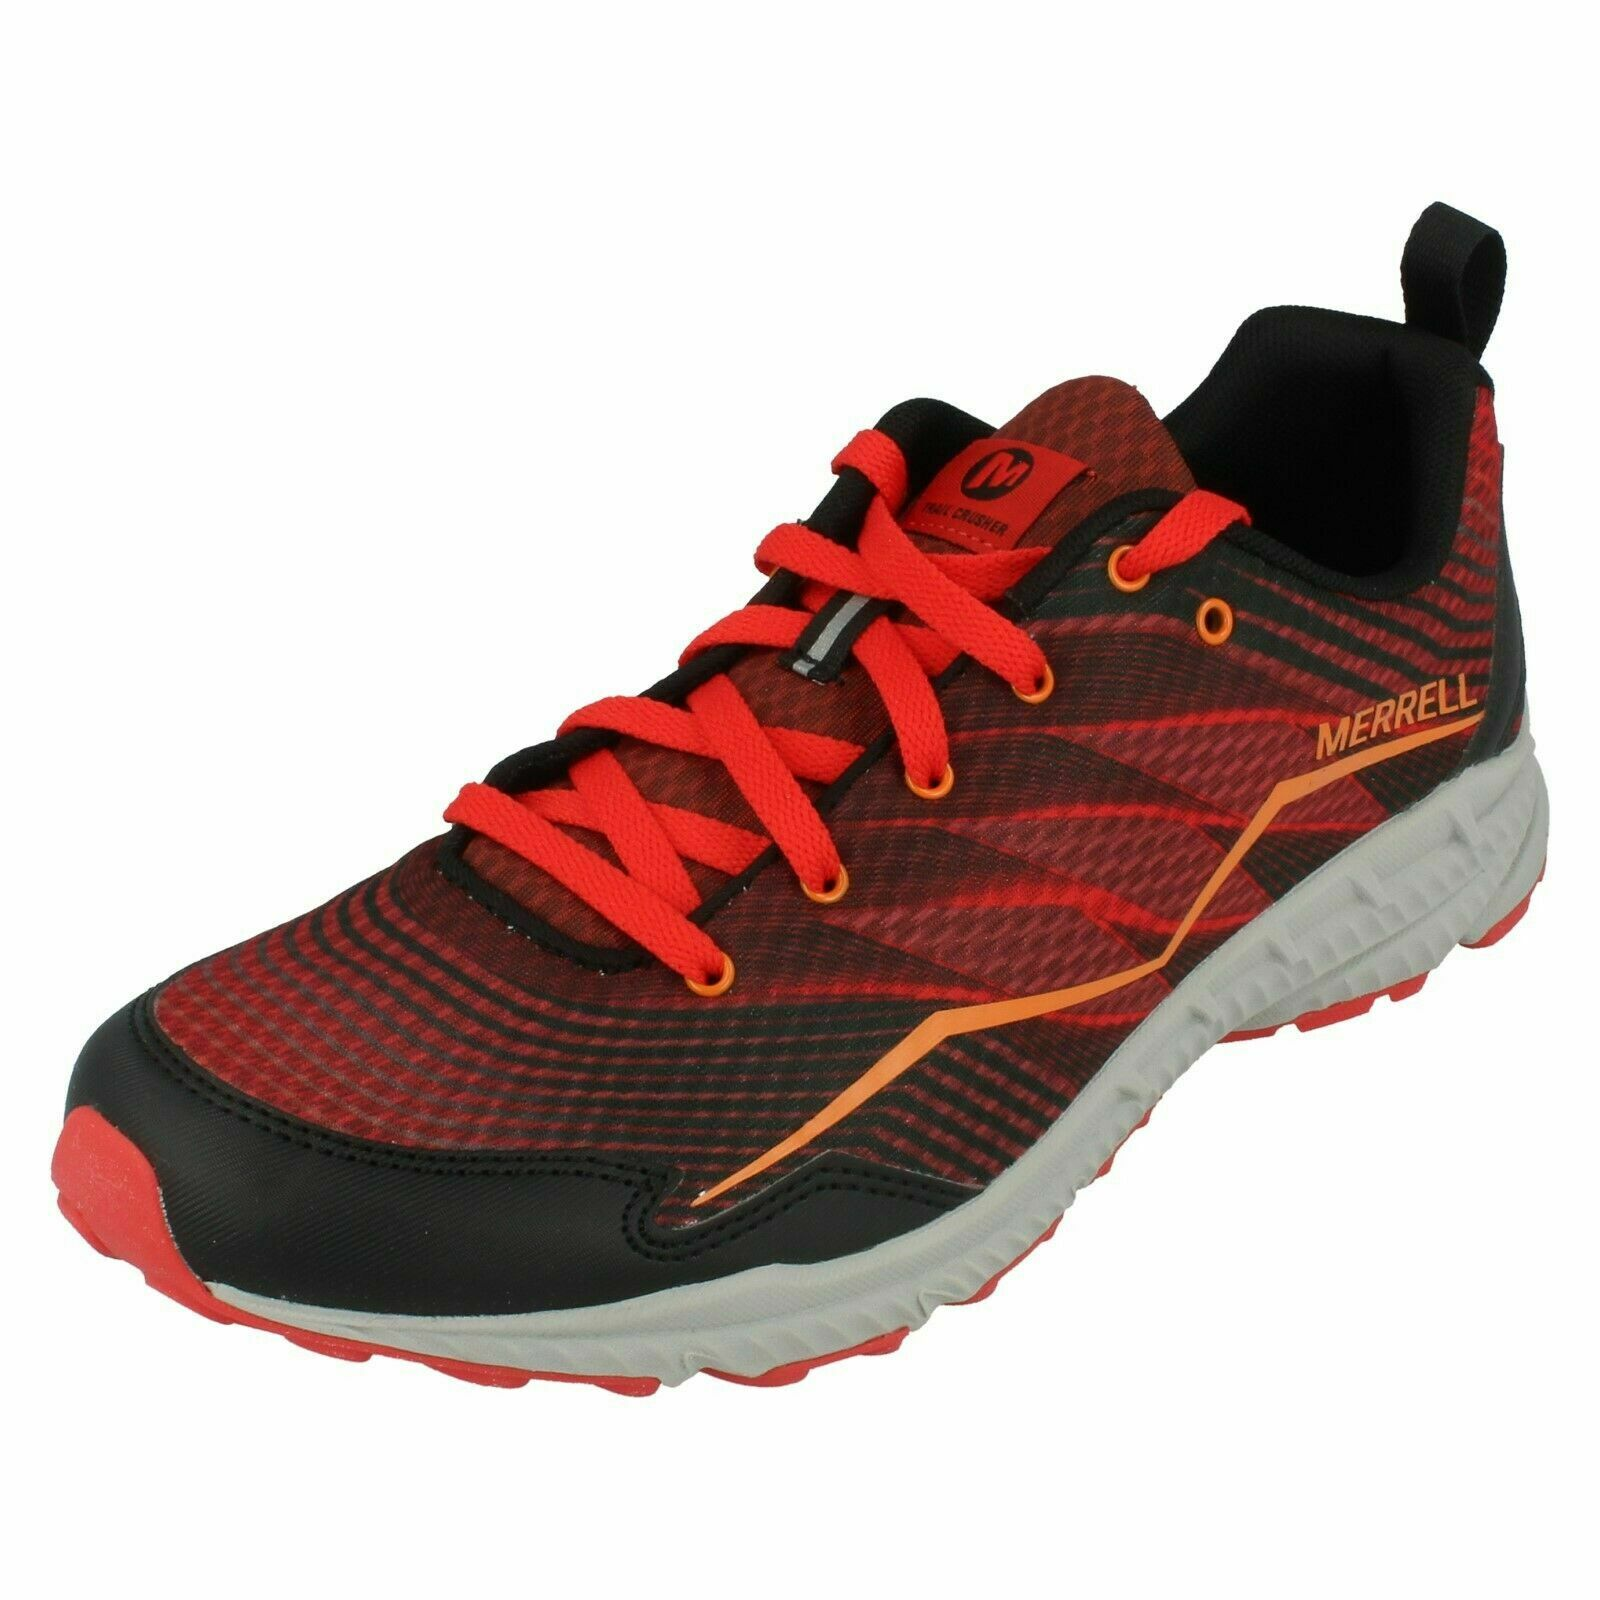 Mens Merrell Lace Up shoes Lightweight Running shoes Trail Crusher J37753 Size